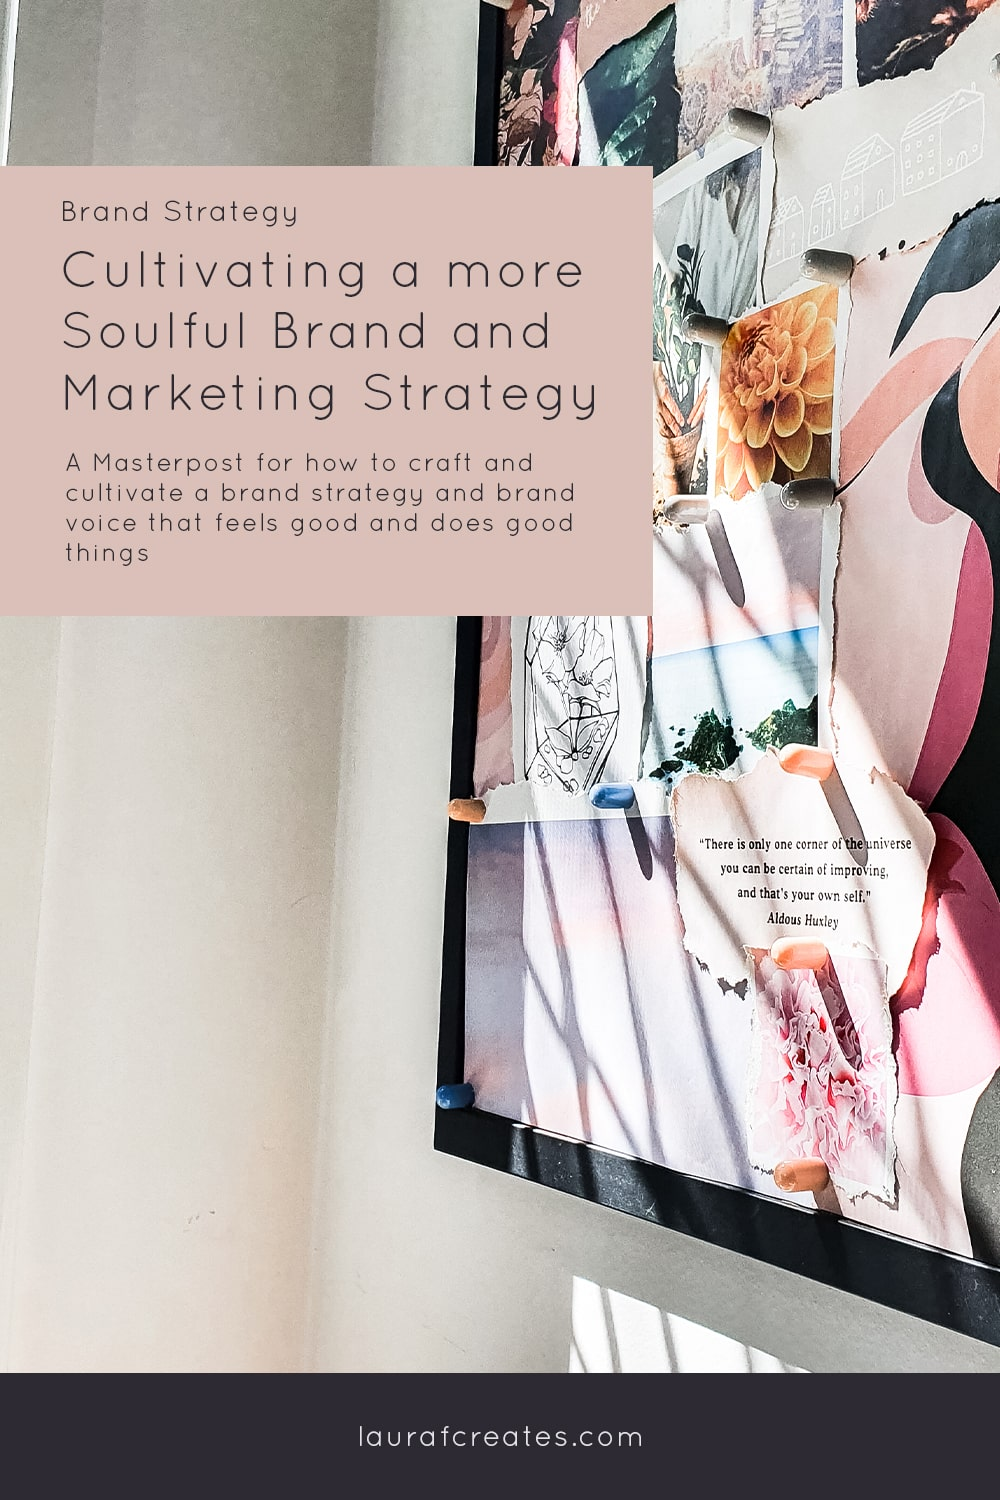 Cultivating a more Soulful Brand and marketing strategy